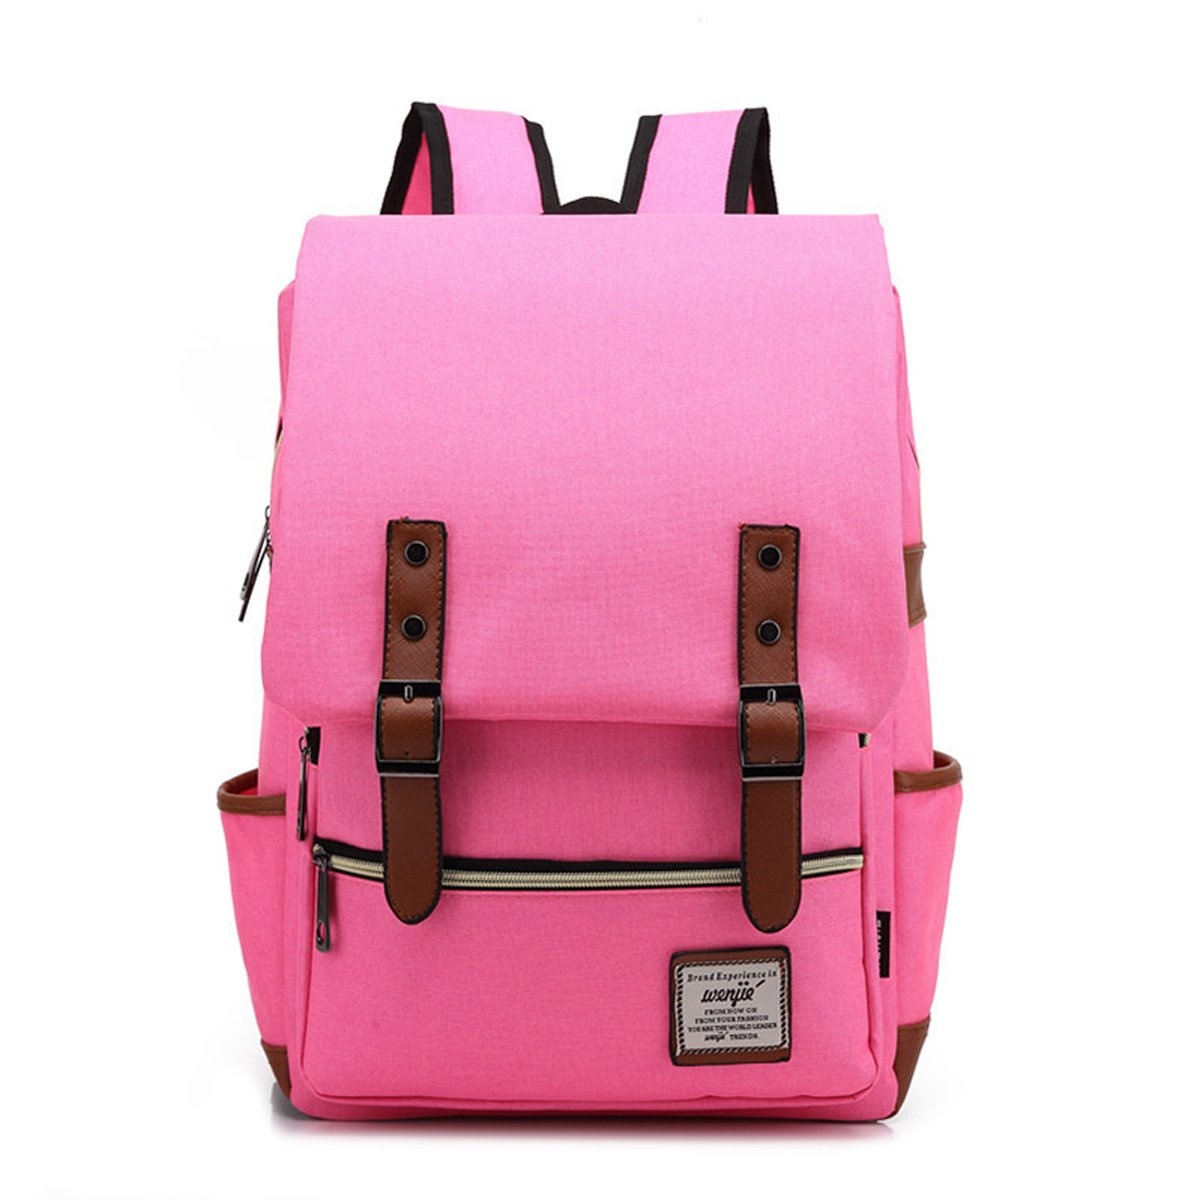 LmeiKK15 inches Retro backpack School bag Notebook Computer Neutral Canvas Backpack